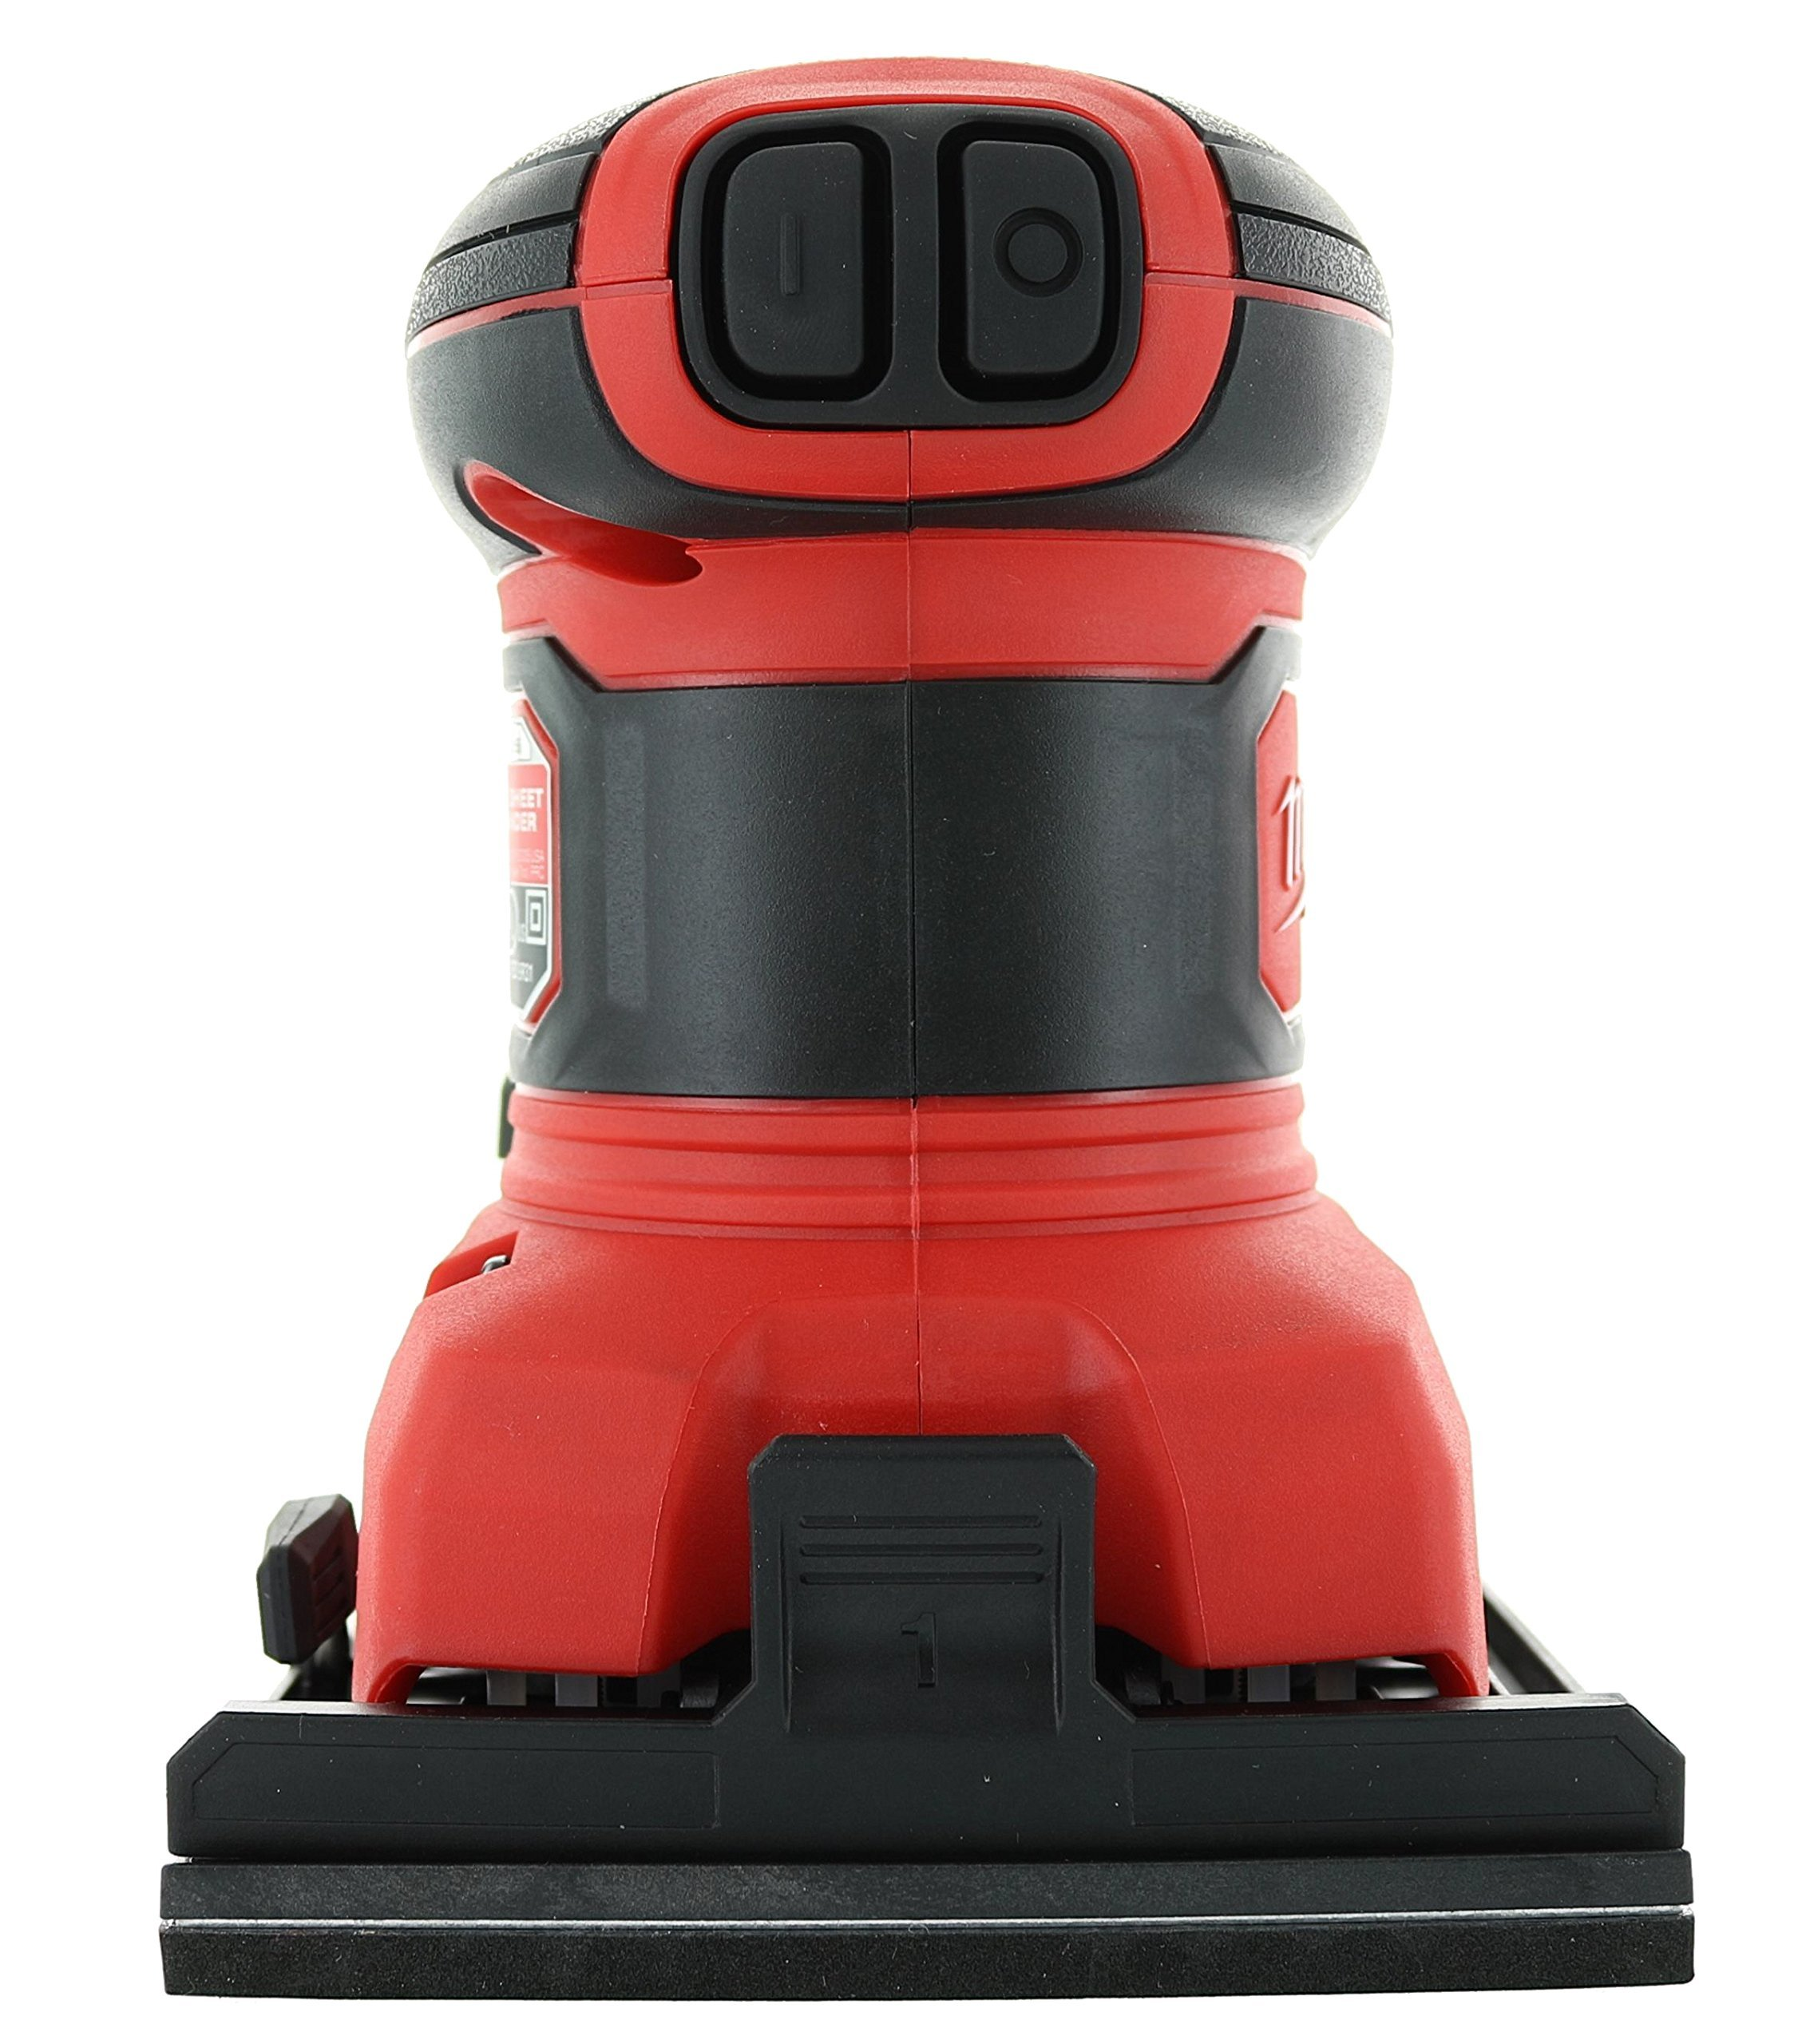 Milwaukee 6033-21 3 Amp 1/4 Sheet Orbital 14,000 OBM Compact Palm Sander with Dust Canister (2 Sheets of Sandpaper Included) by Milwaukee (Image #5)